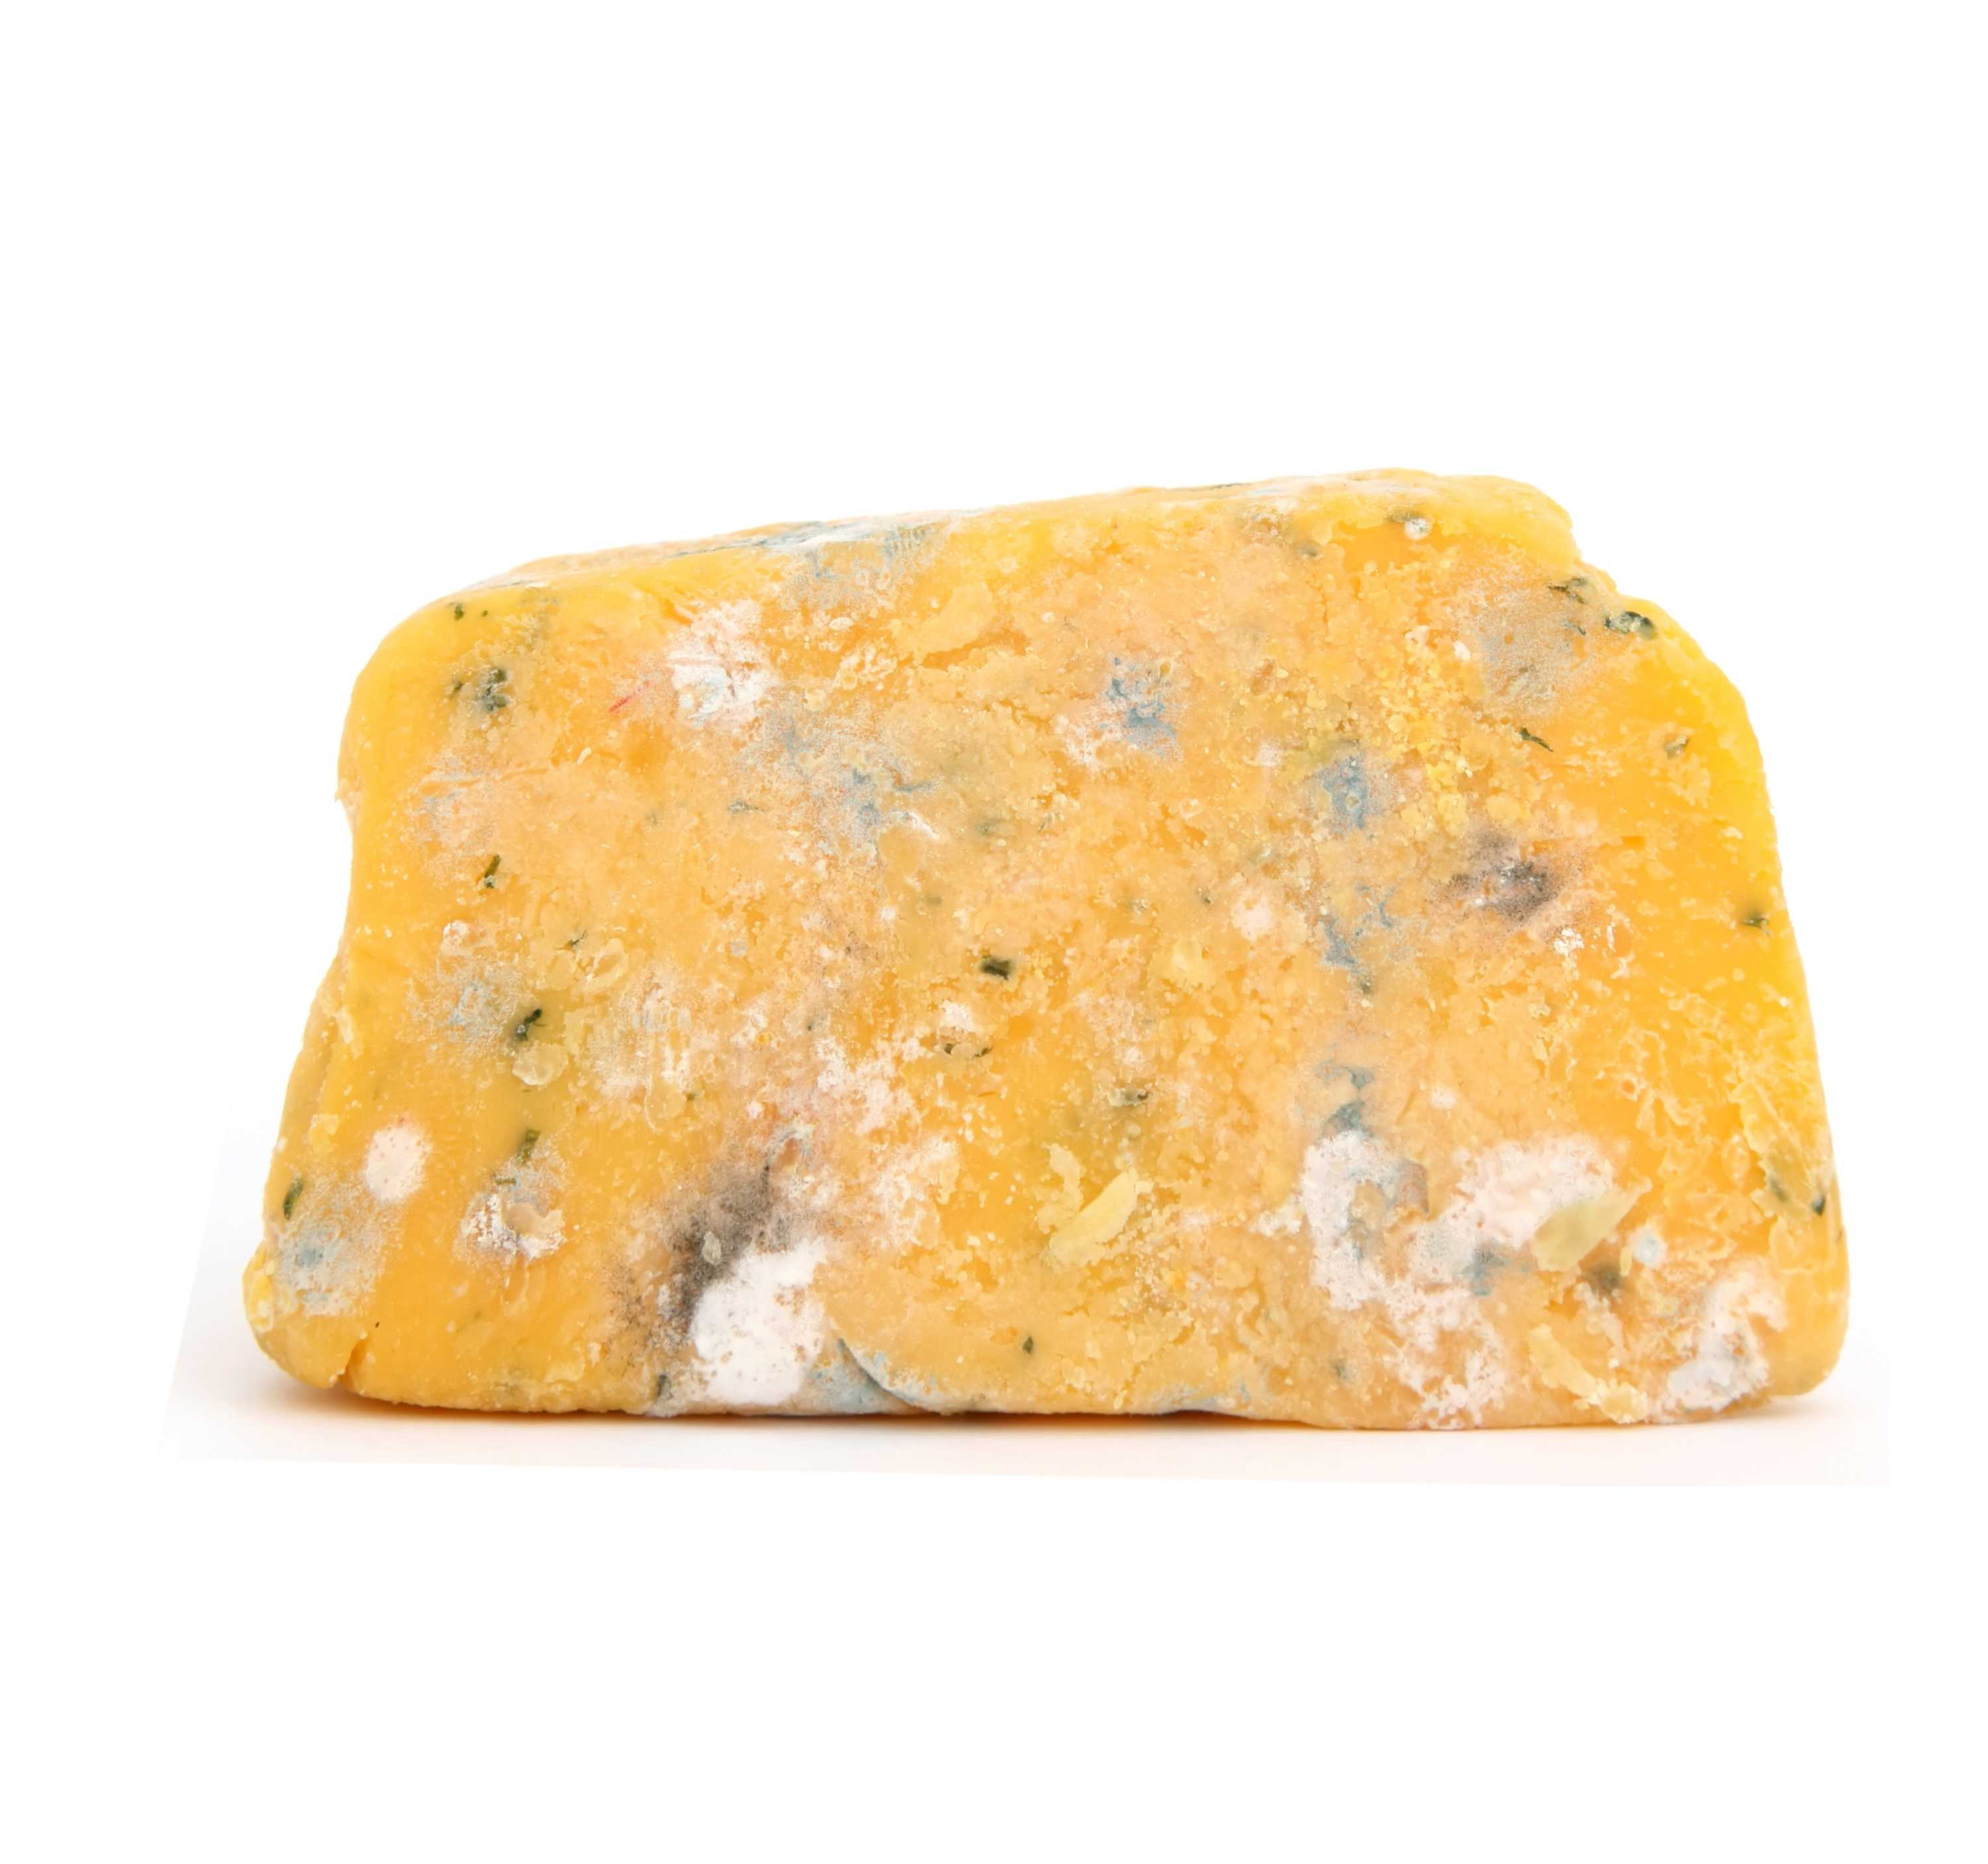 Block of moldy cheese.